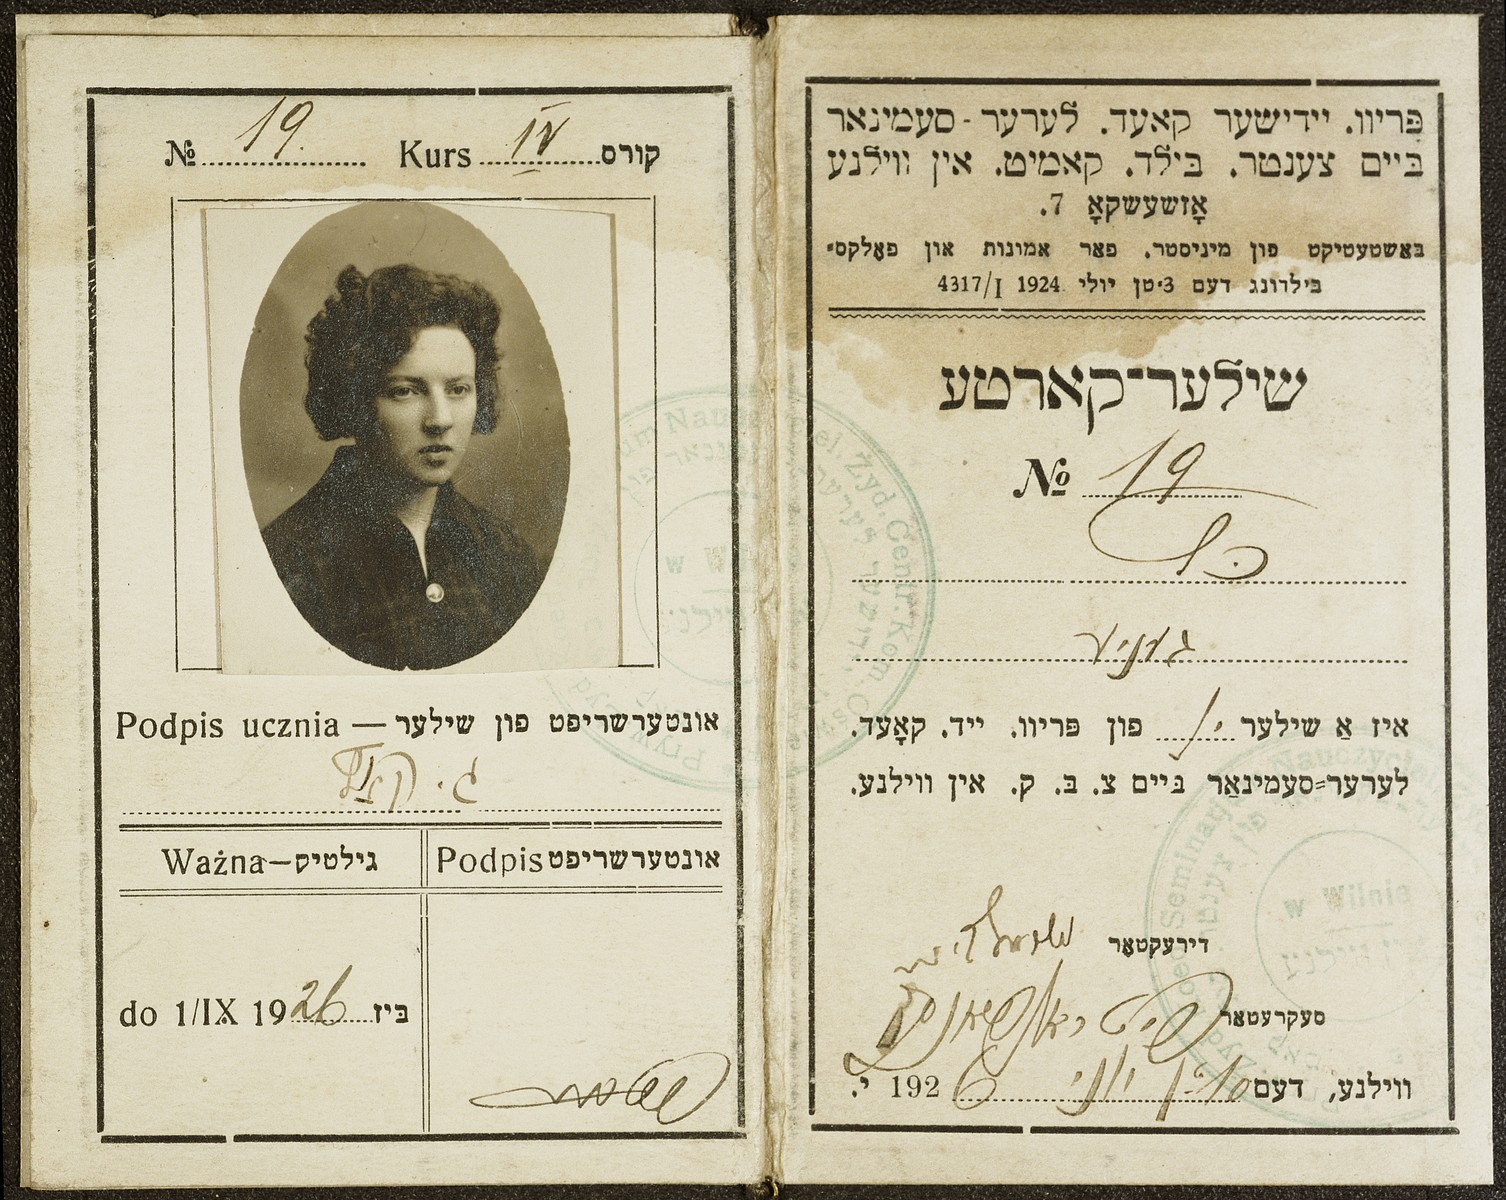 Student identification card of the Vilner Lehrer Seminar (Yiddish Teachers' Seminary) issued to Genia Kac, a young Jewish woman.  The Vilner Lehrer Seminar operated under the aegis of the Central Committee for Education in Vilna.